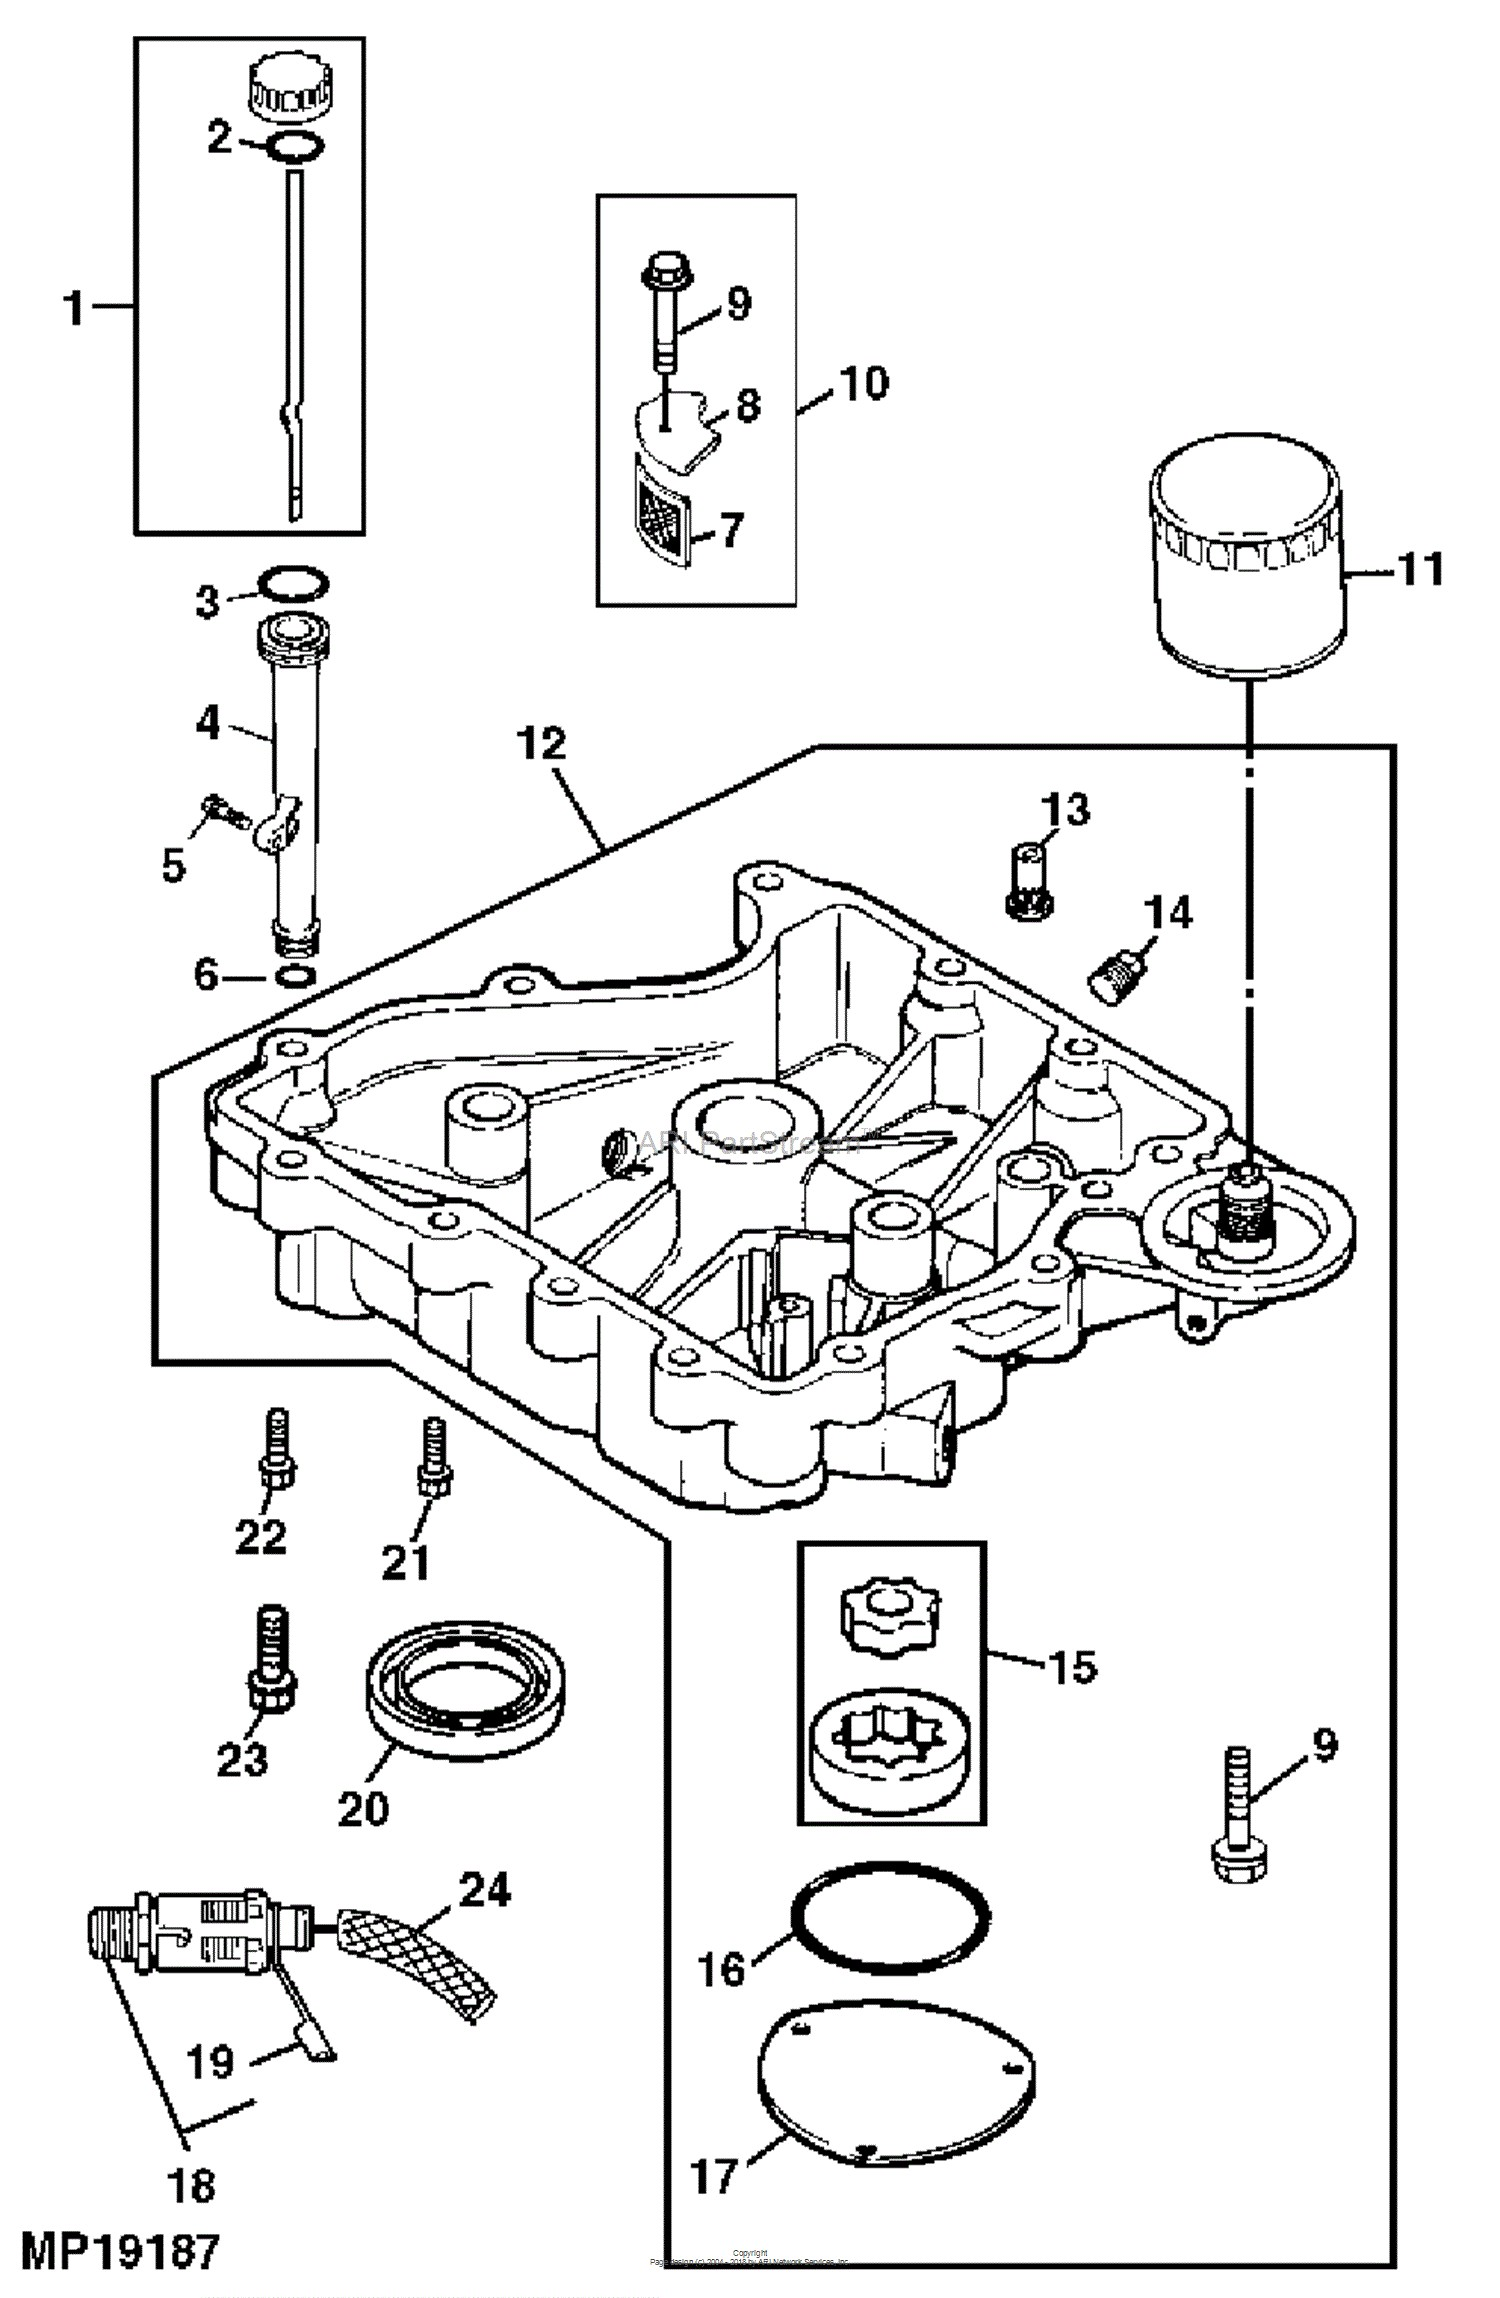 echo srm 210 parts diagram echo srm 280 s n s s parts